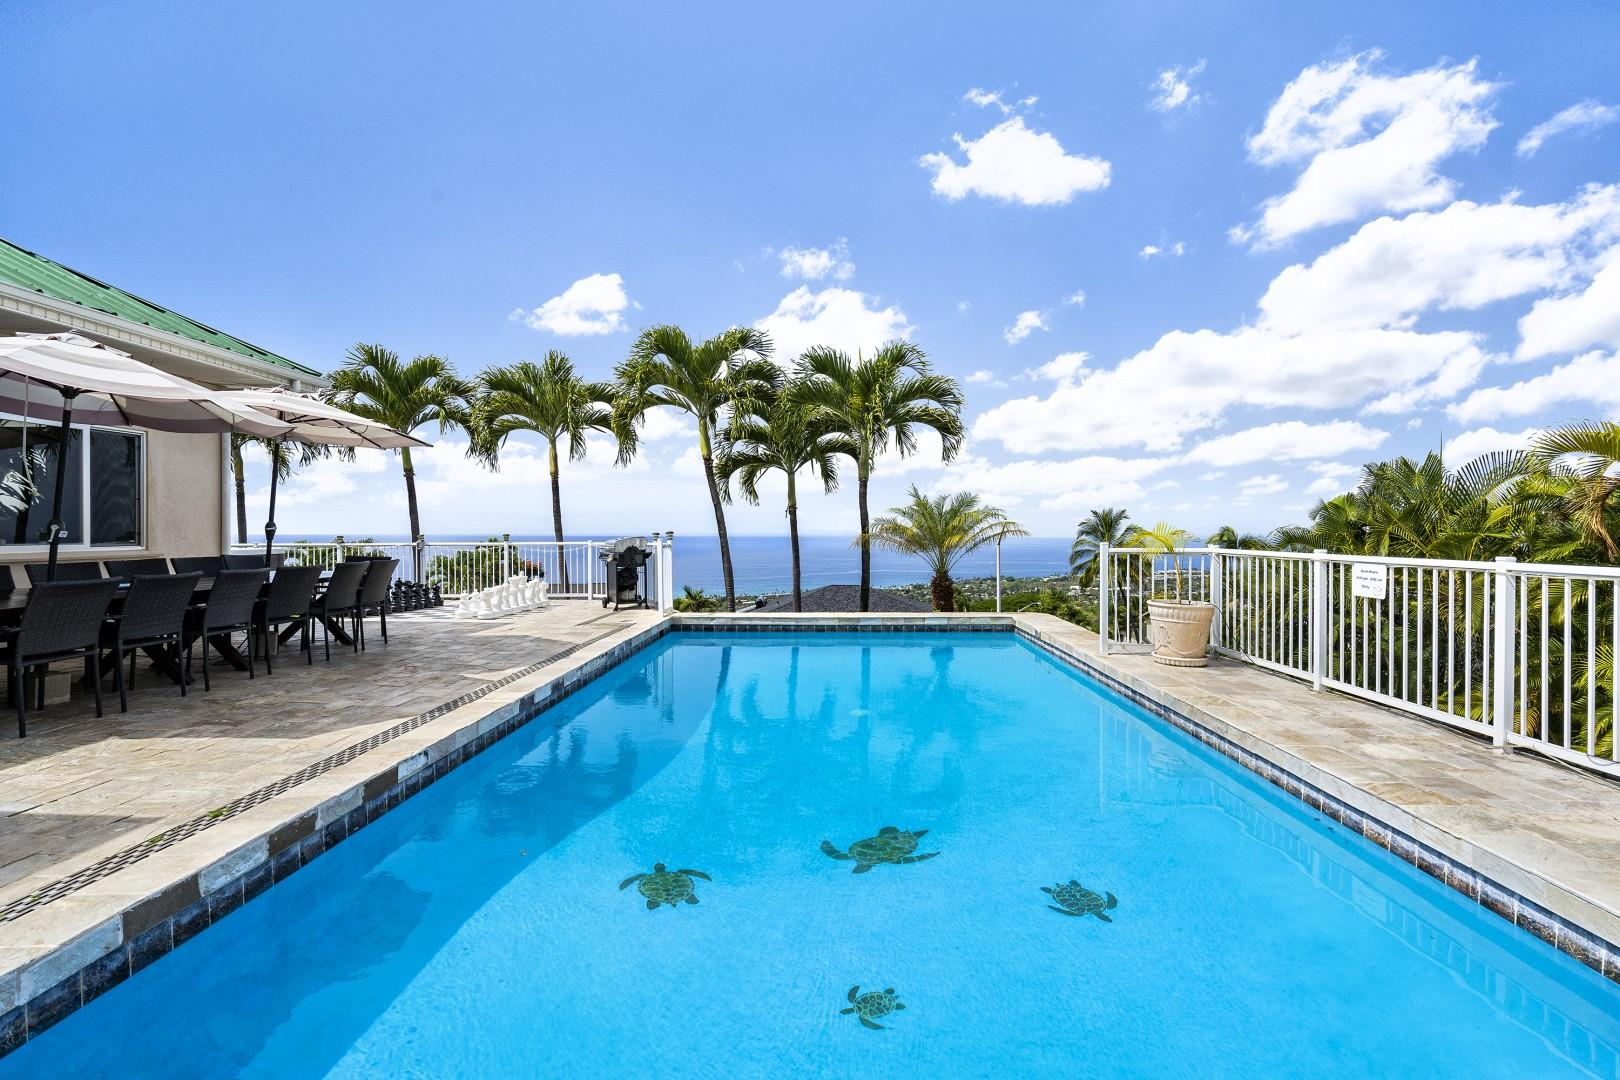 Take a dip in the pool with the ocean horizon as the back drop!